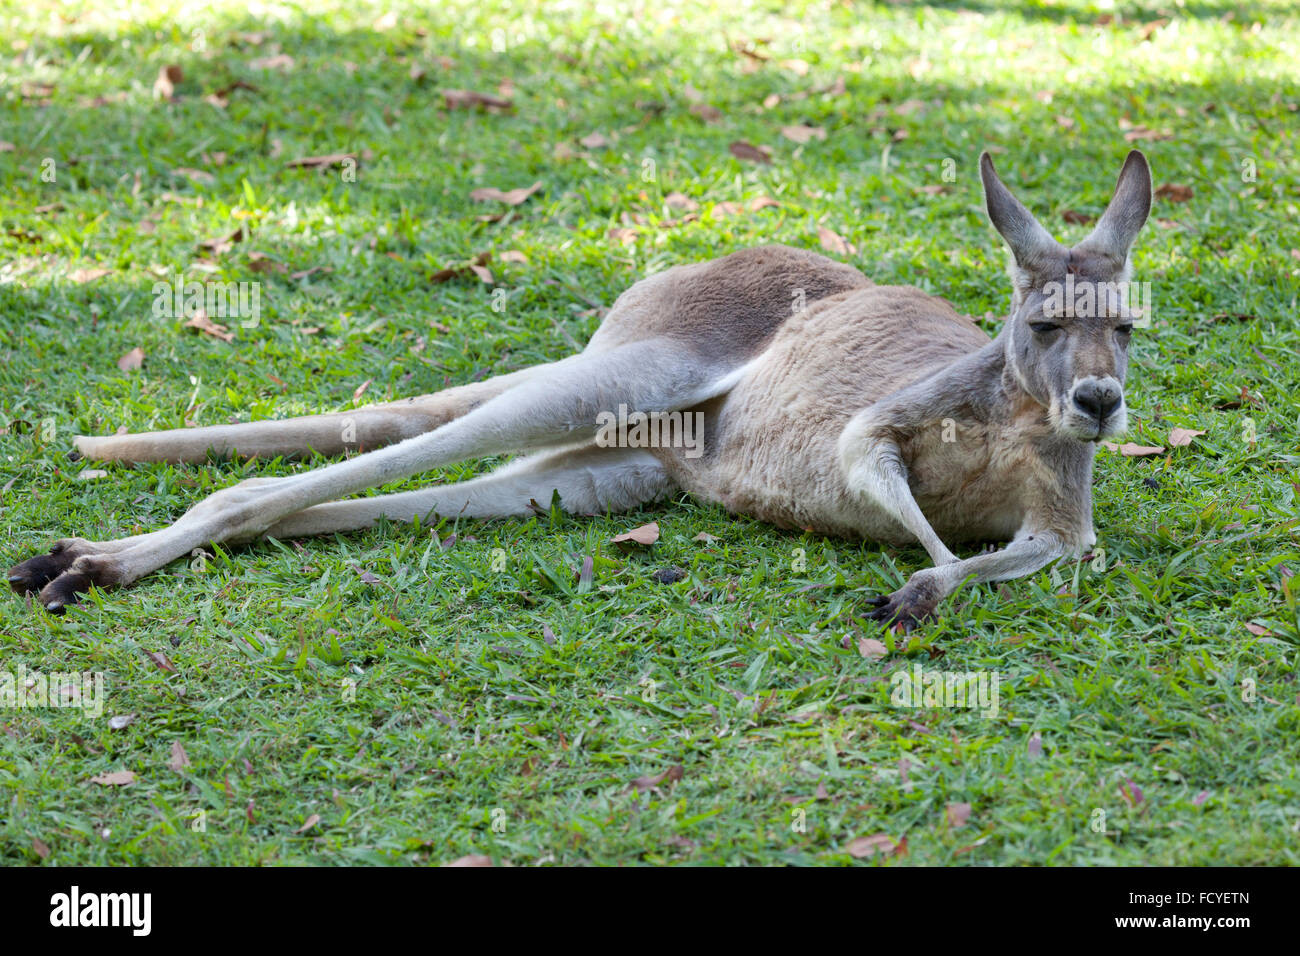 Kangourou rouge allongé dans l'herbe, Queensland, Australie Photo Stock